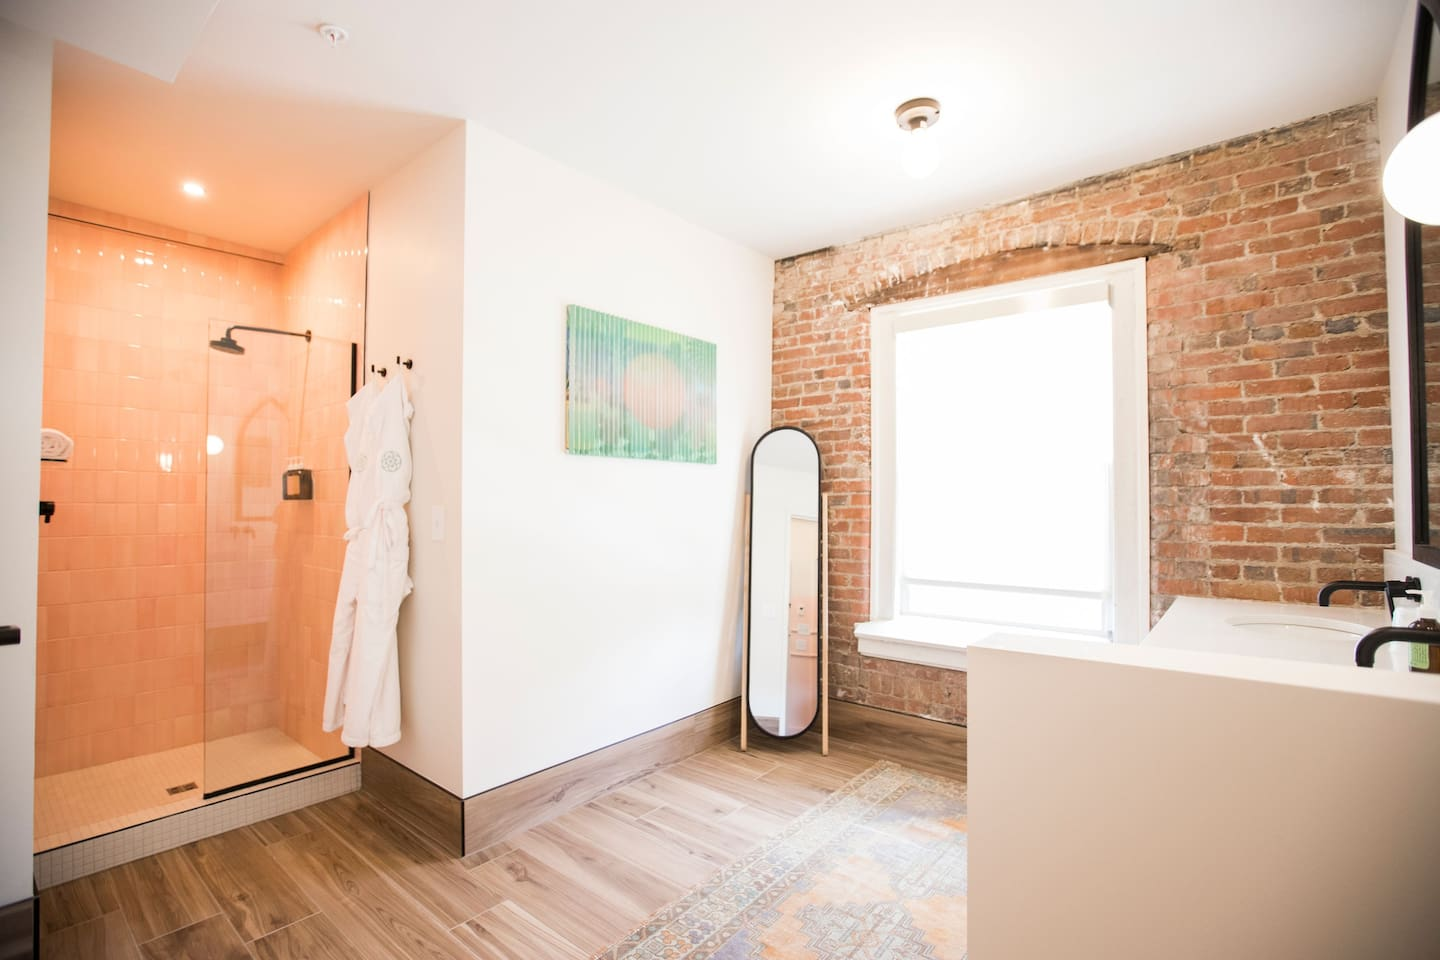 Beautiful bathroom with original brick walls and double sinks!